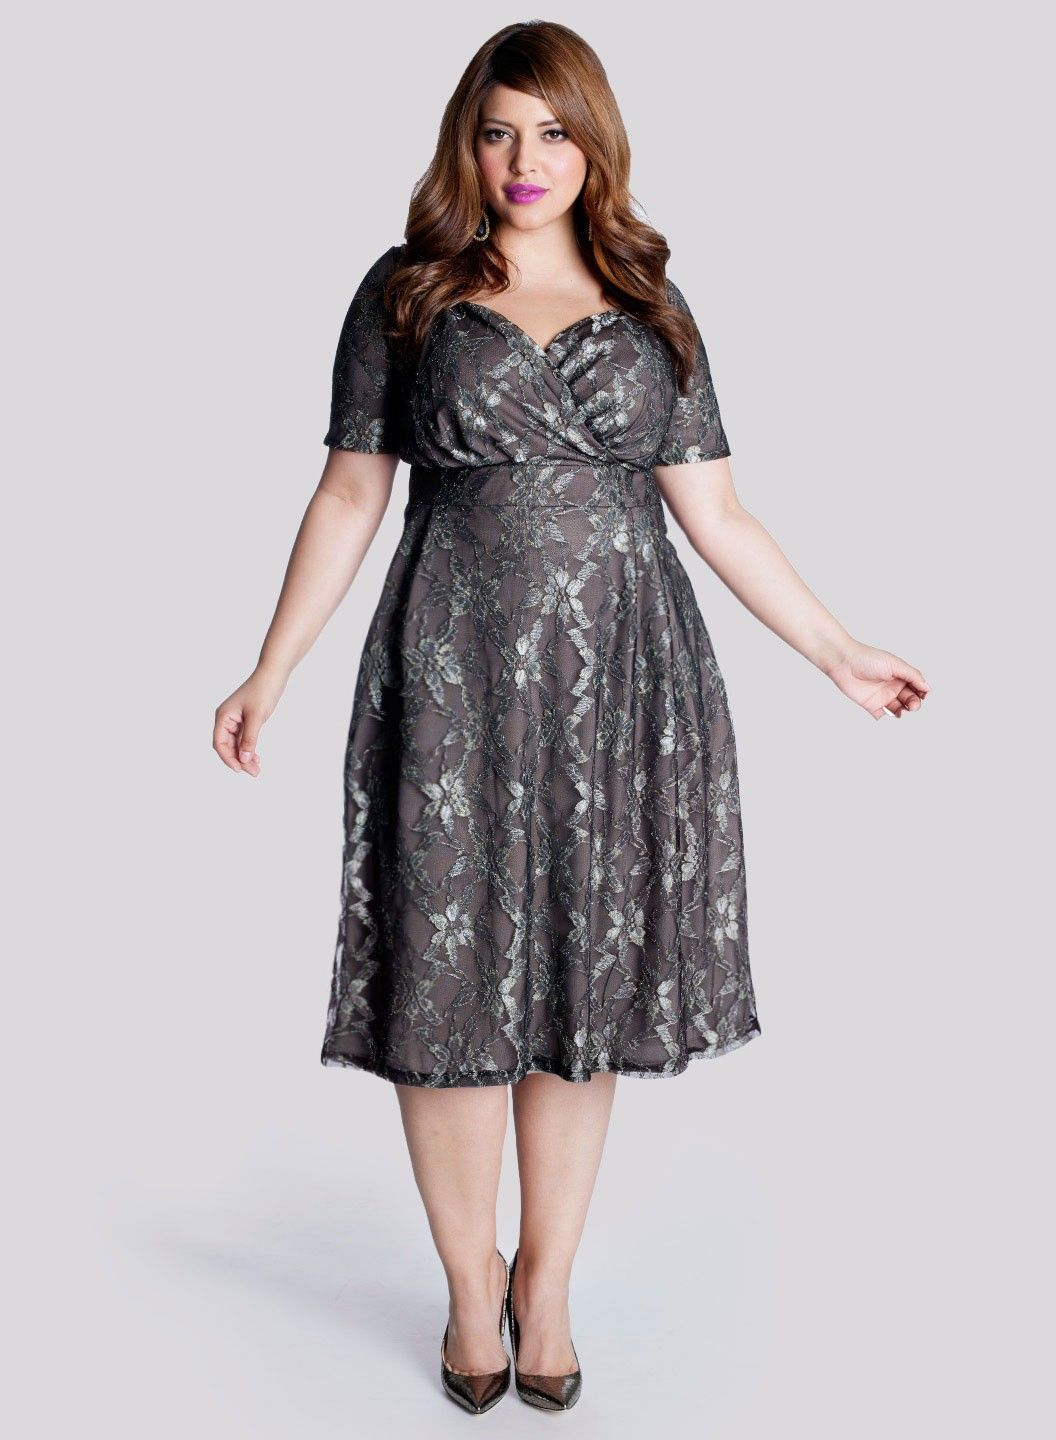 Marisol Plus Size Lace Dress in Truffle | Lace dress